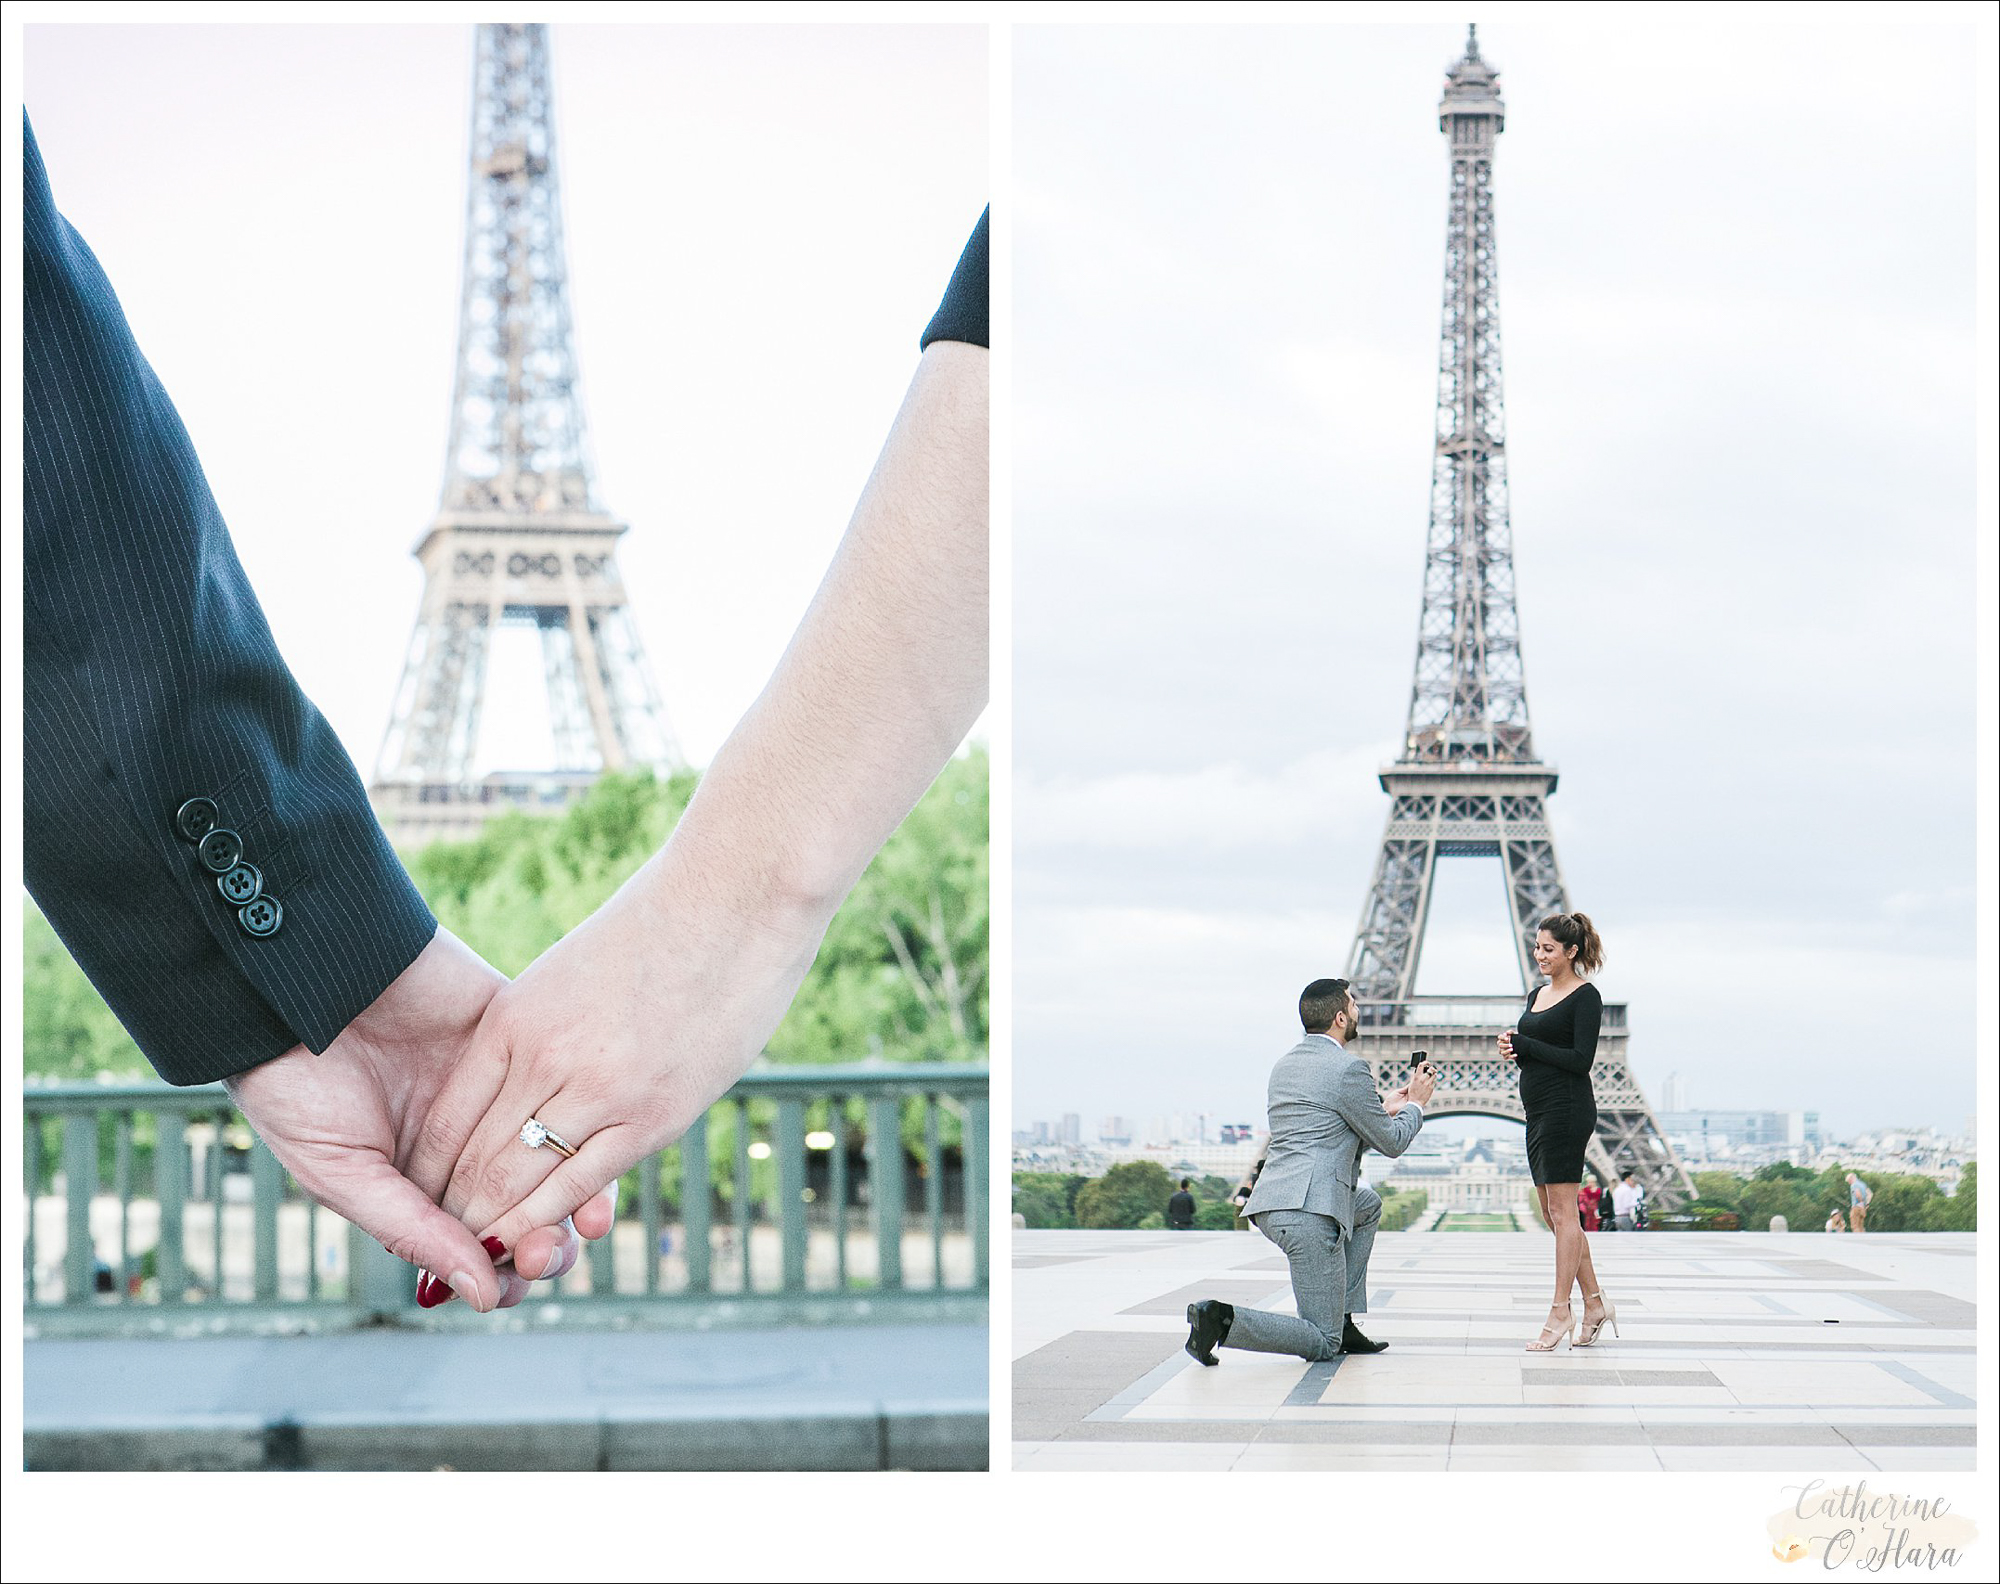 surprise proposal engagement photographer paris france-10.jpg